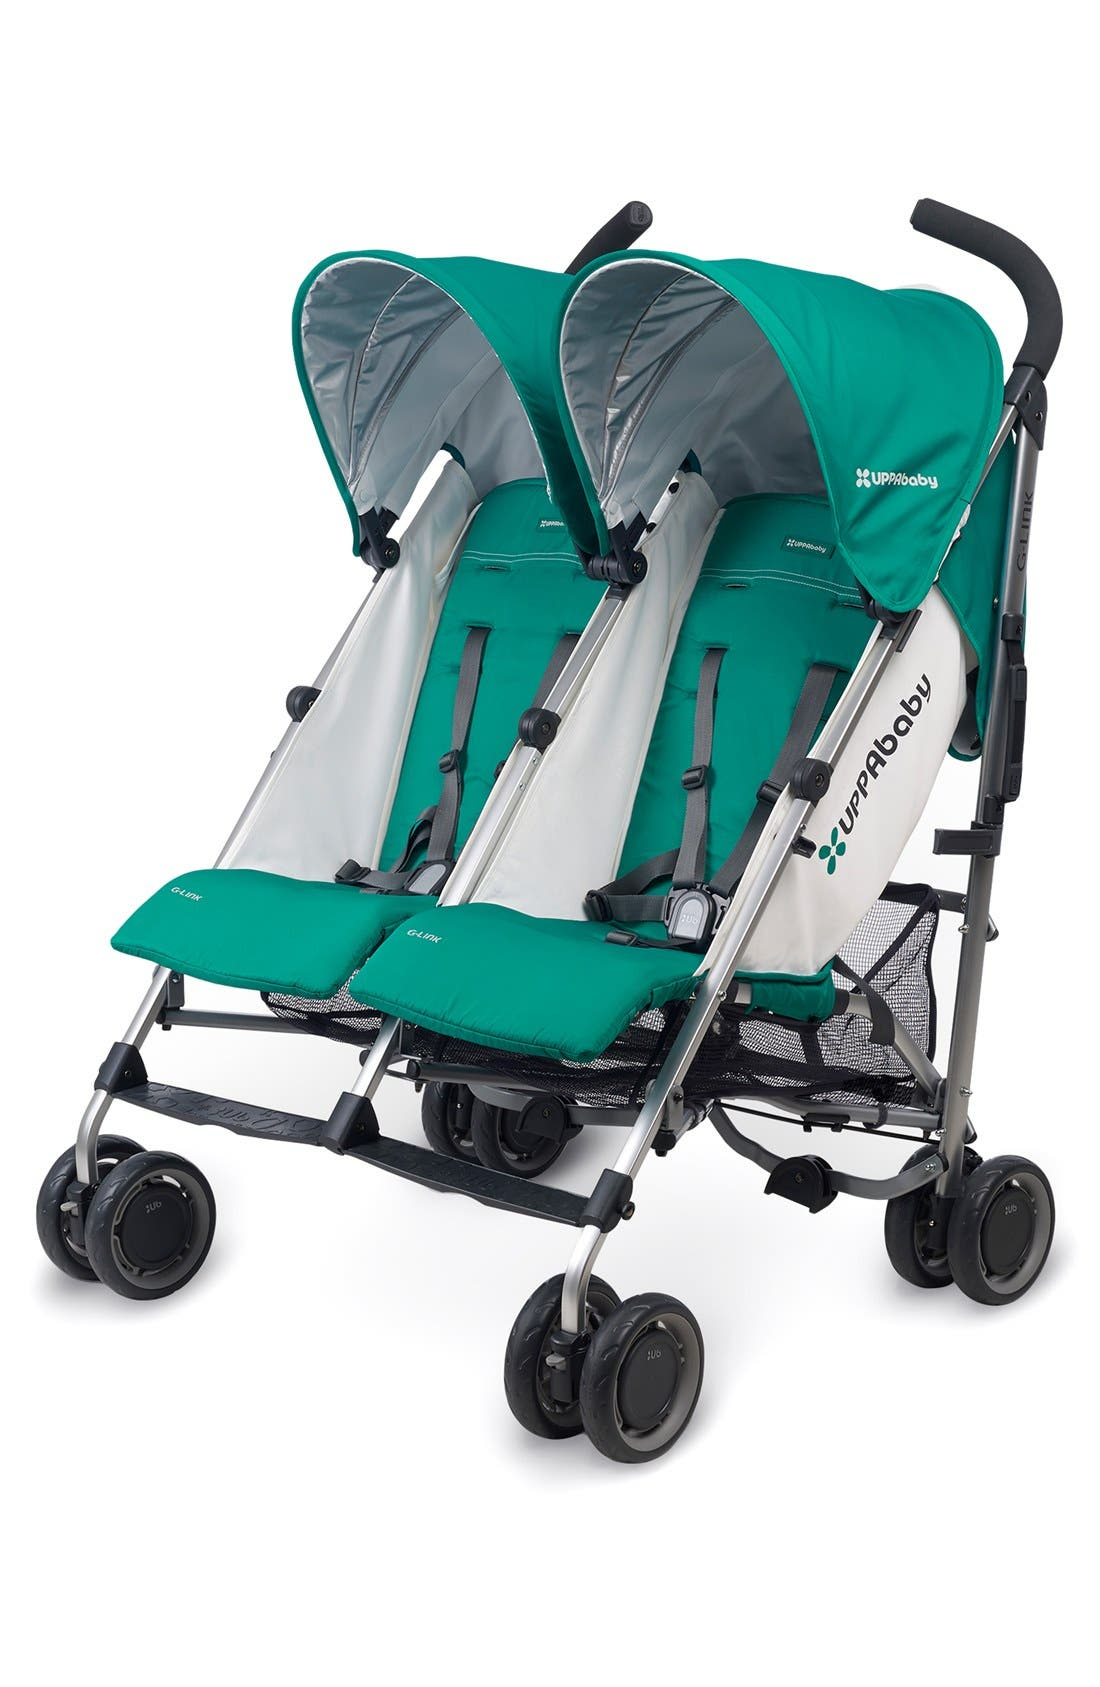 G-LINK Ella Aluminum Frame Reclining Side by Side Umbrella Stroller,                             Main thumbnail 1, color,                             300